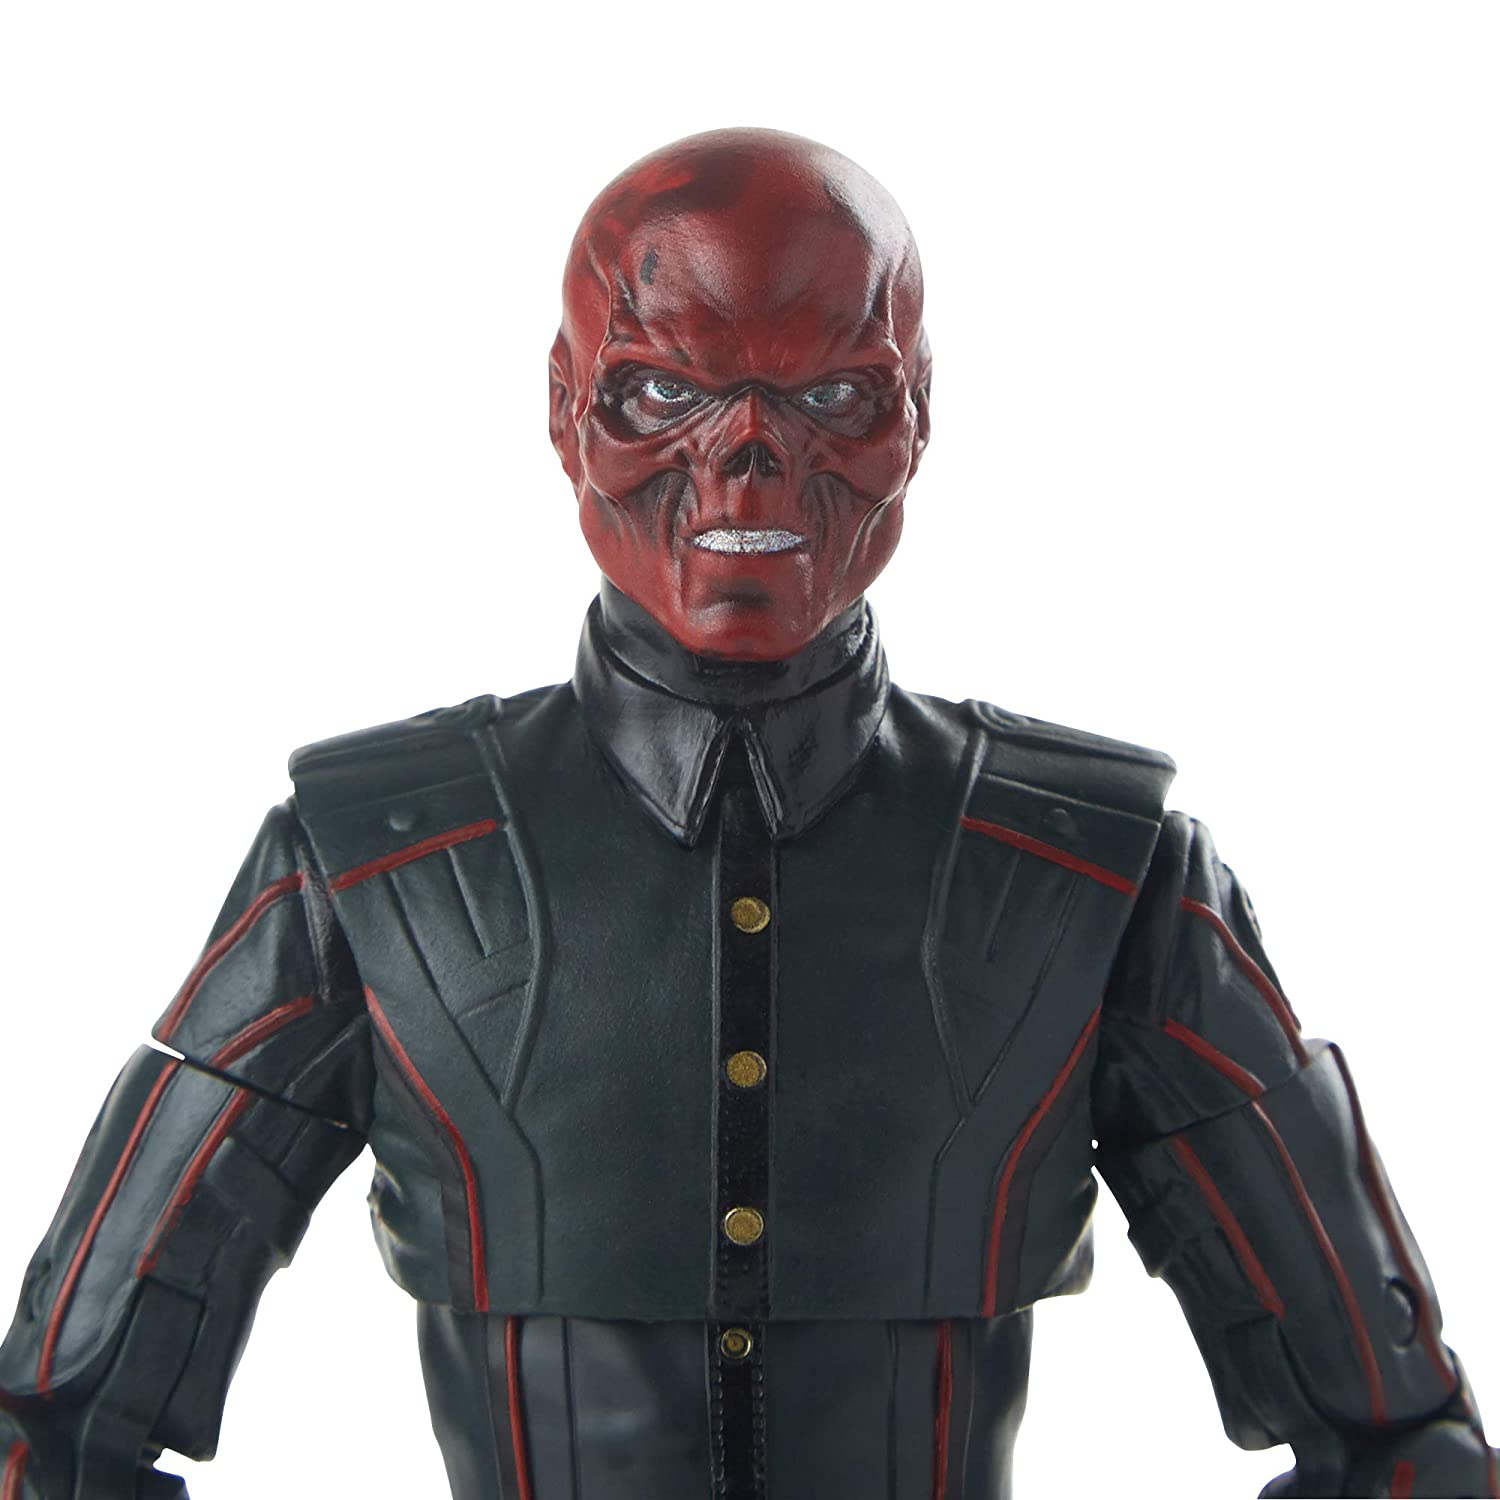 The First Ten Years Captain America Marvel Studios The First Avenger Red Skull Hasbro E2446